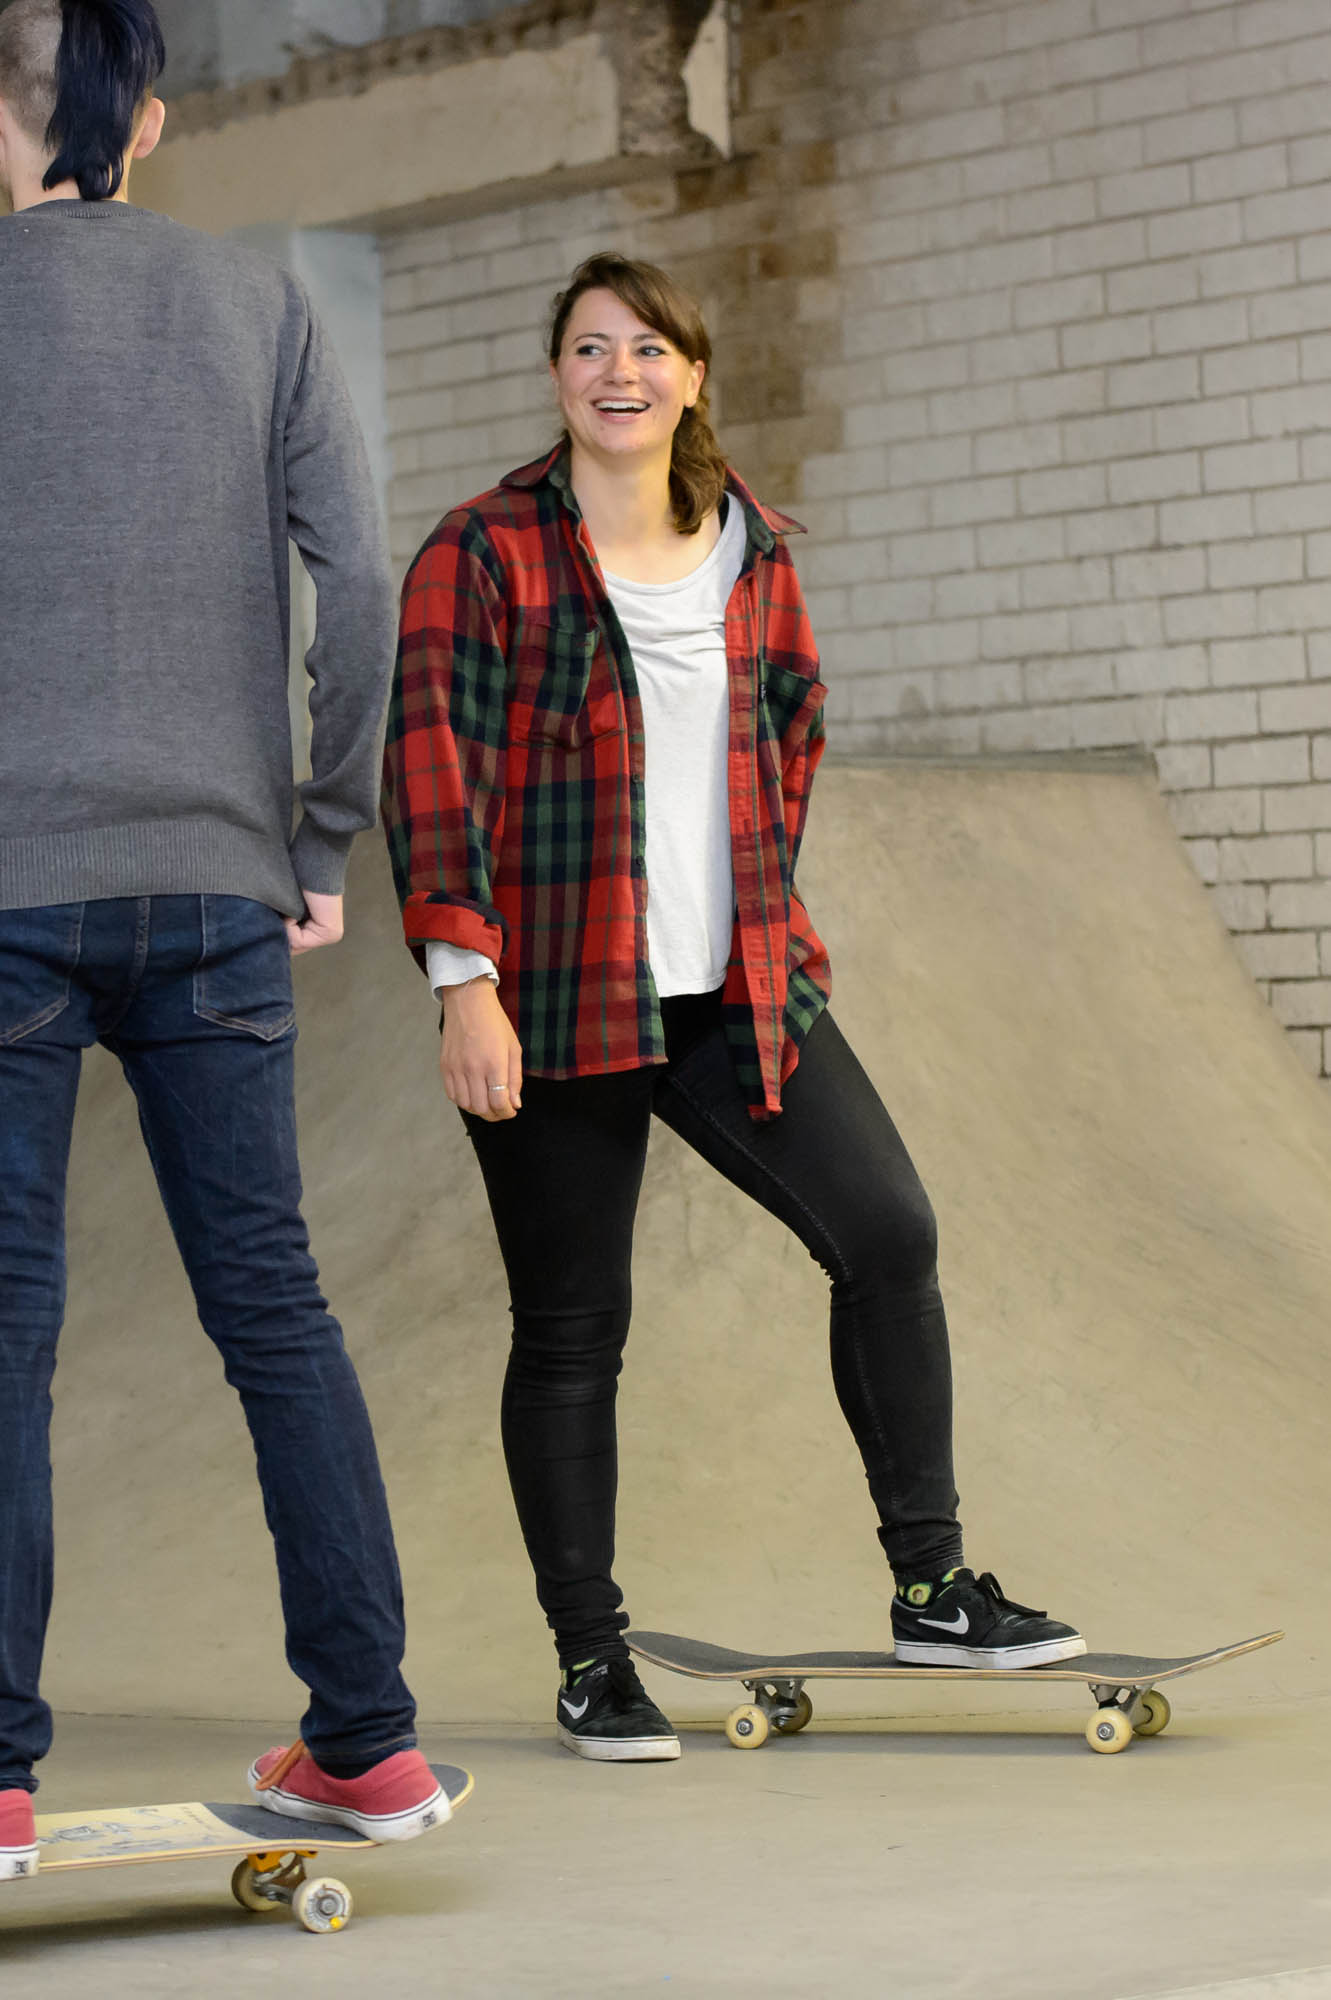 A young woman standing on a skateboard